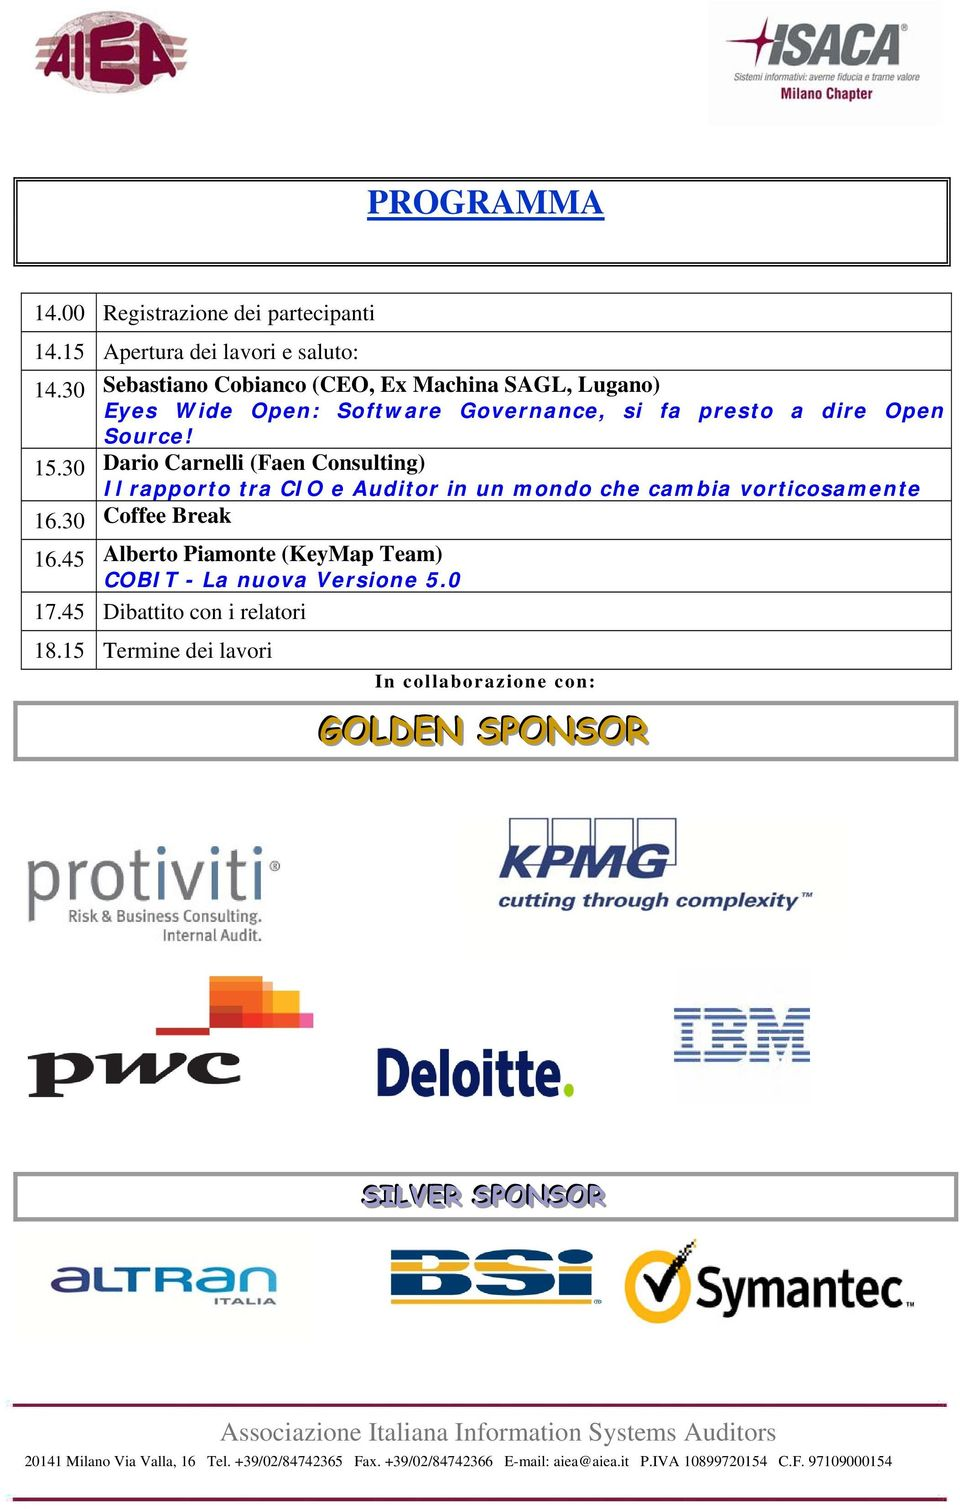 Open Source! 15.30 Il rapporto tra CIO e Auditor in un mondo che cambia vorticosamente 16.30 Coffee Break 16.